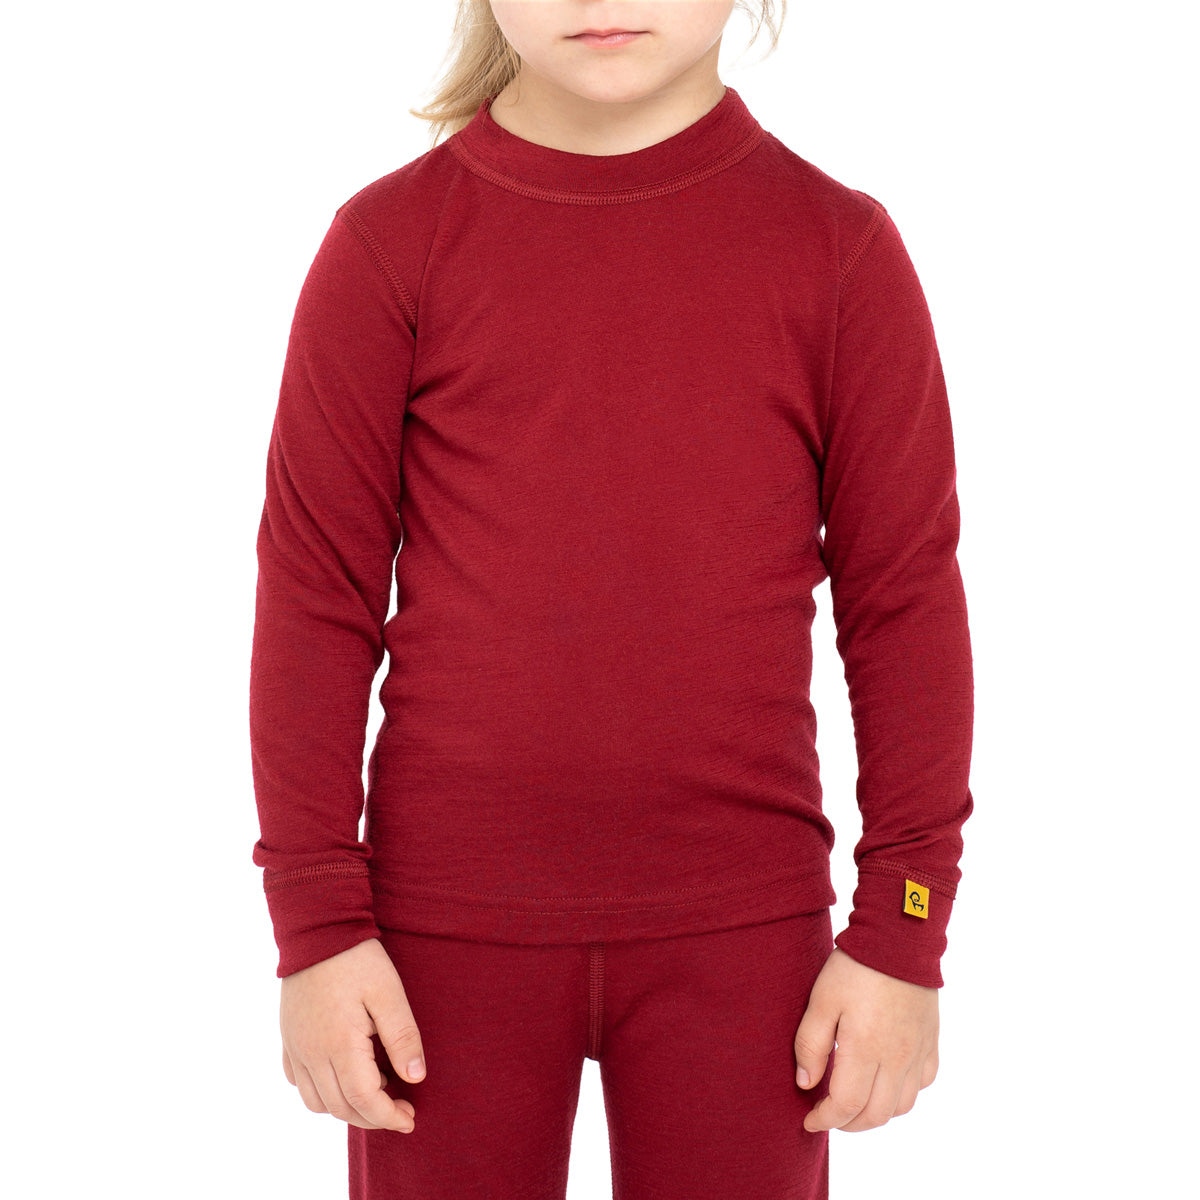 Kids' Merino 160 Long Sleeve Crew Royal Cherry